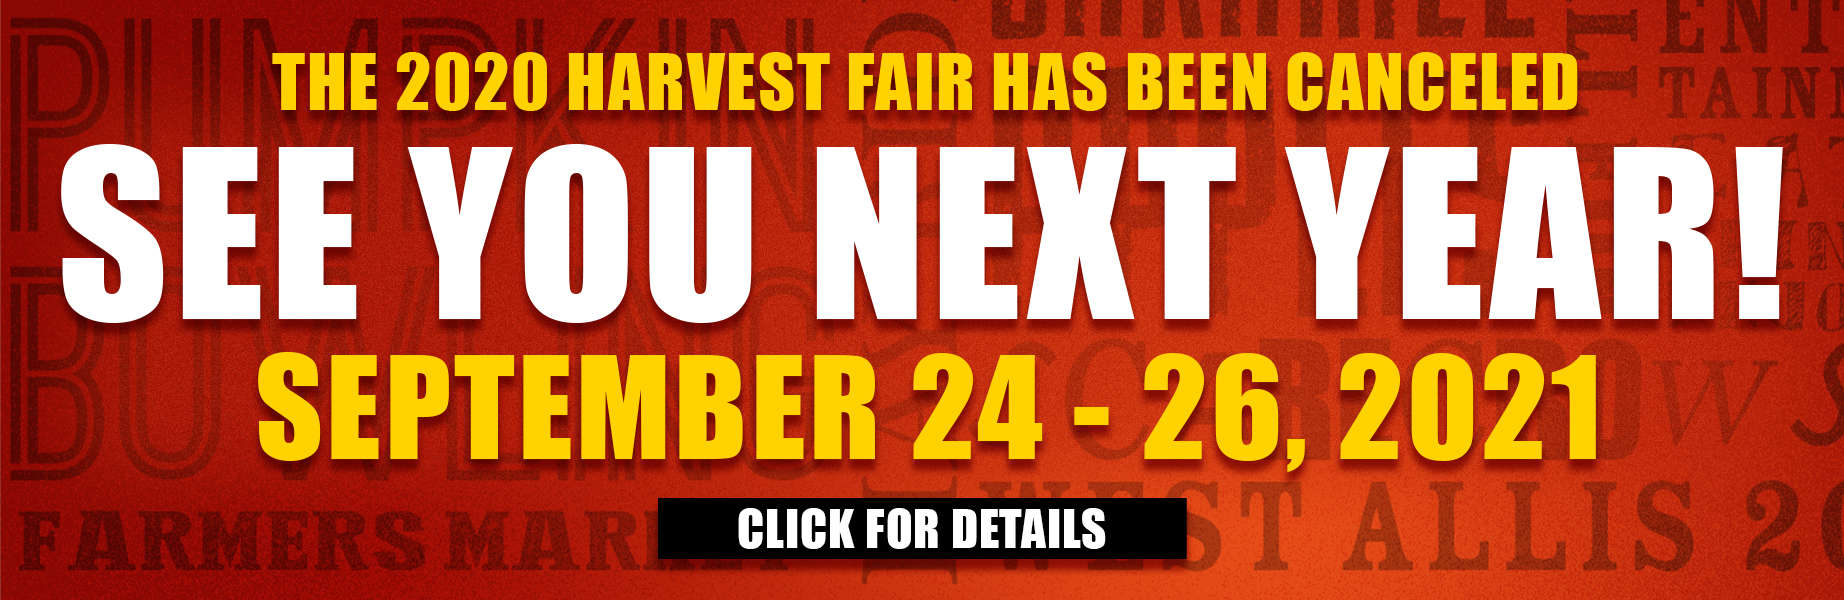 2020 Harvest Fair has been cancelled. See you next year, September 24-26, 2021. Click for Details.